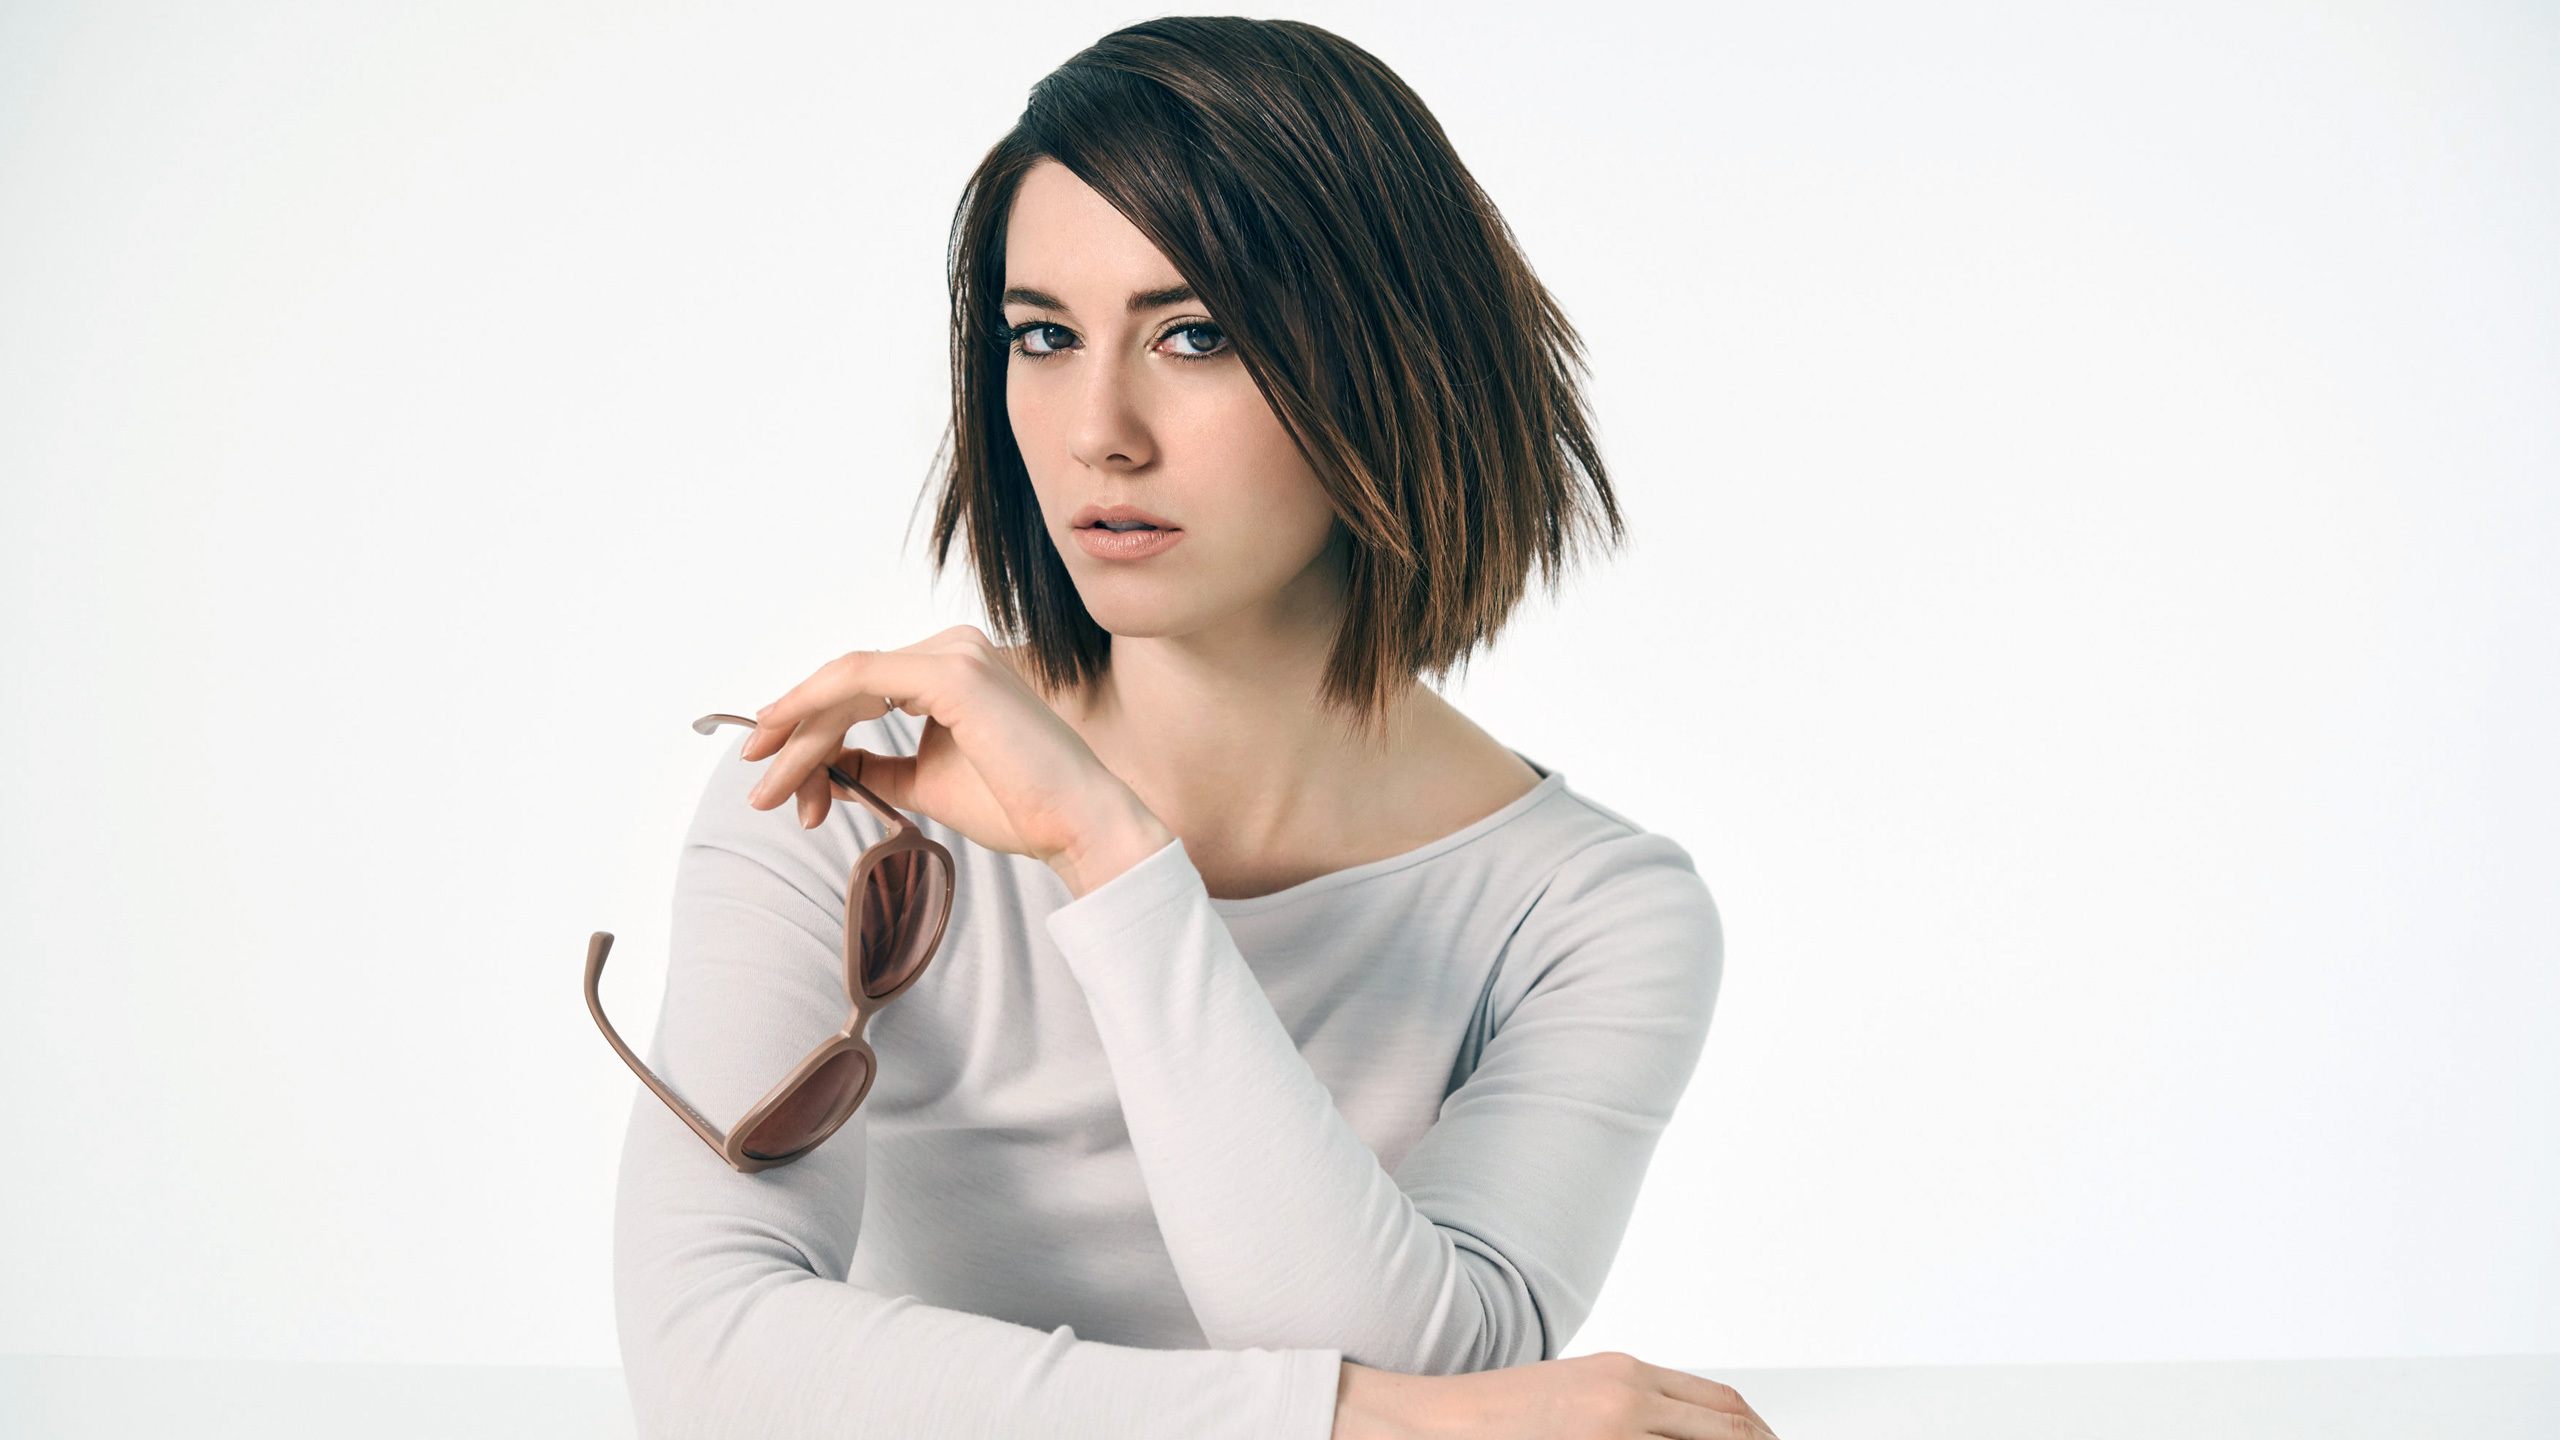 Pictures Of Mary Elizabeth Winstead